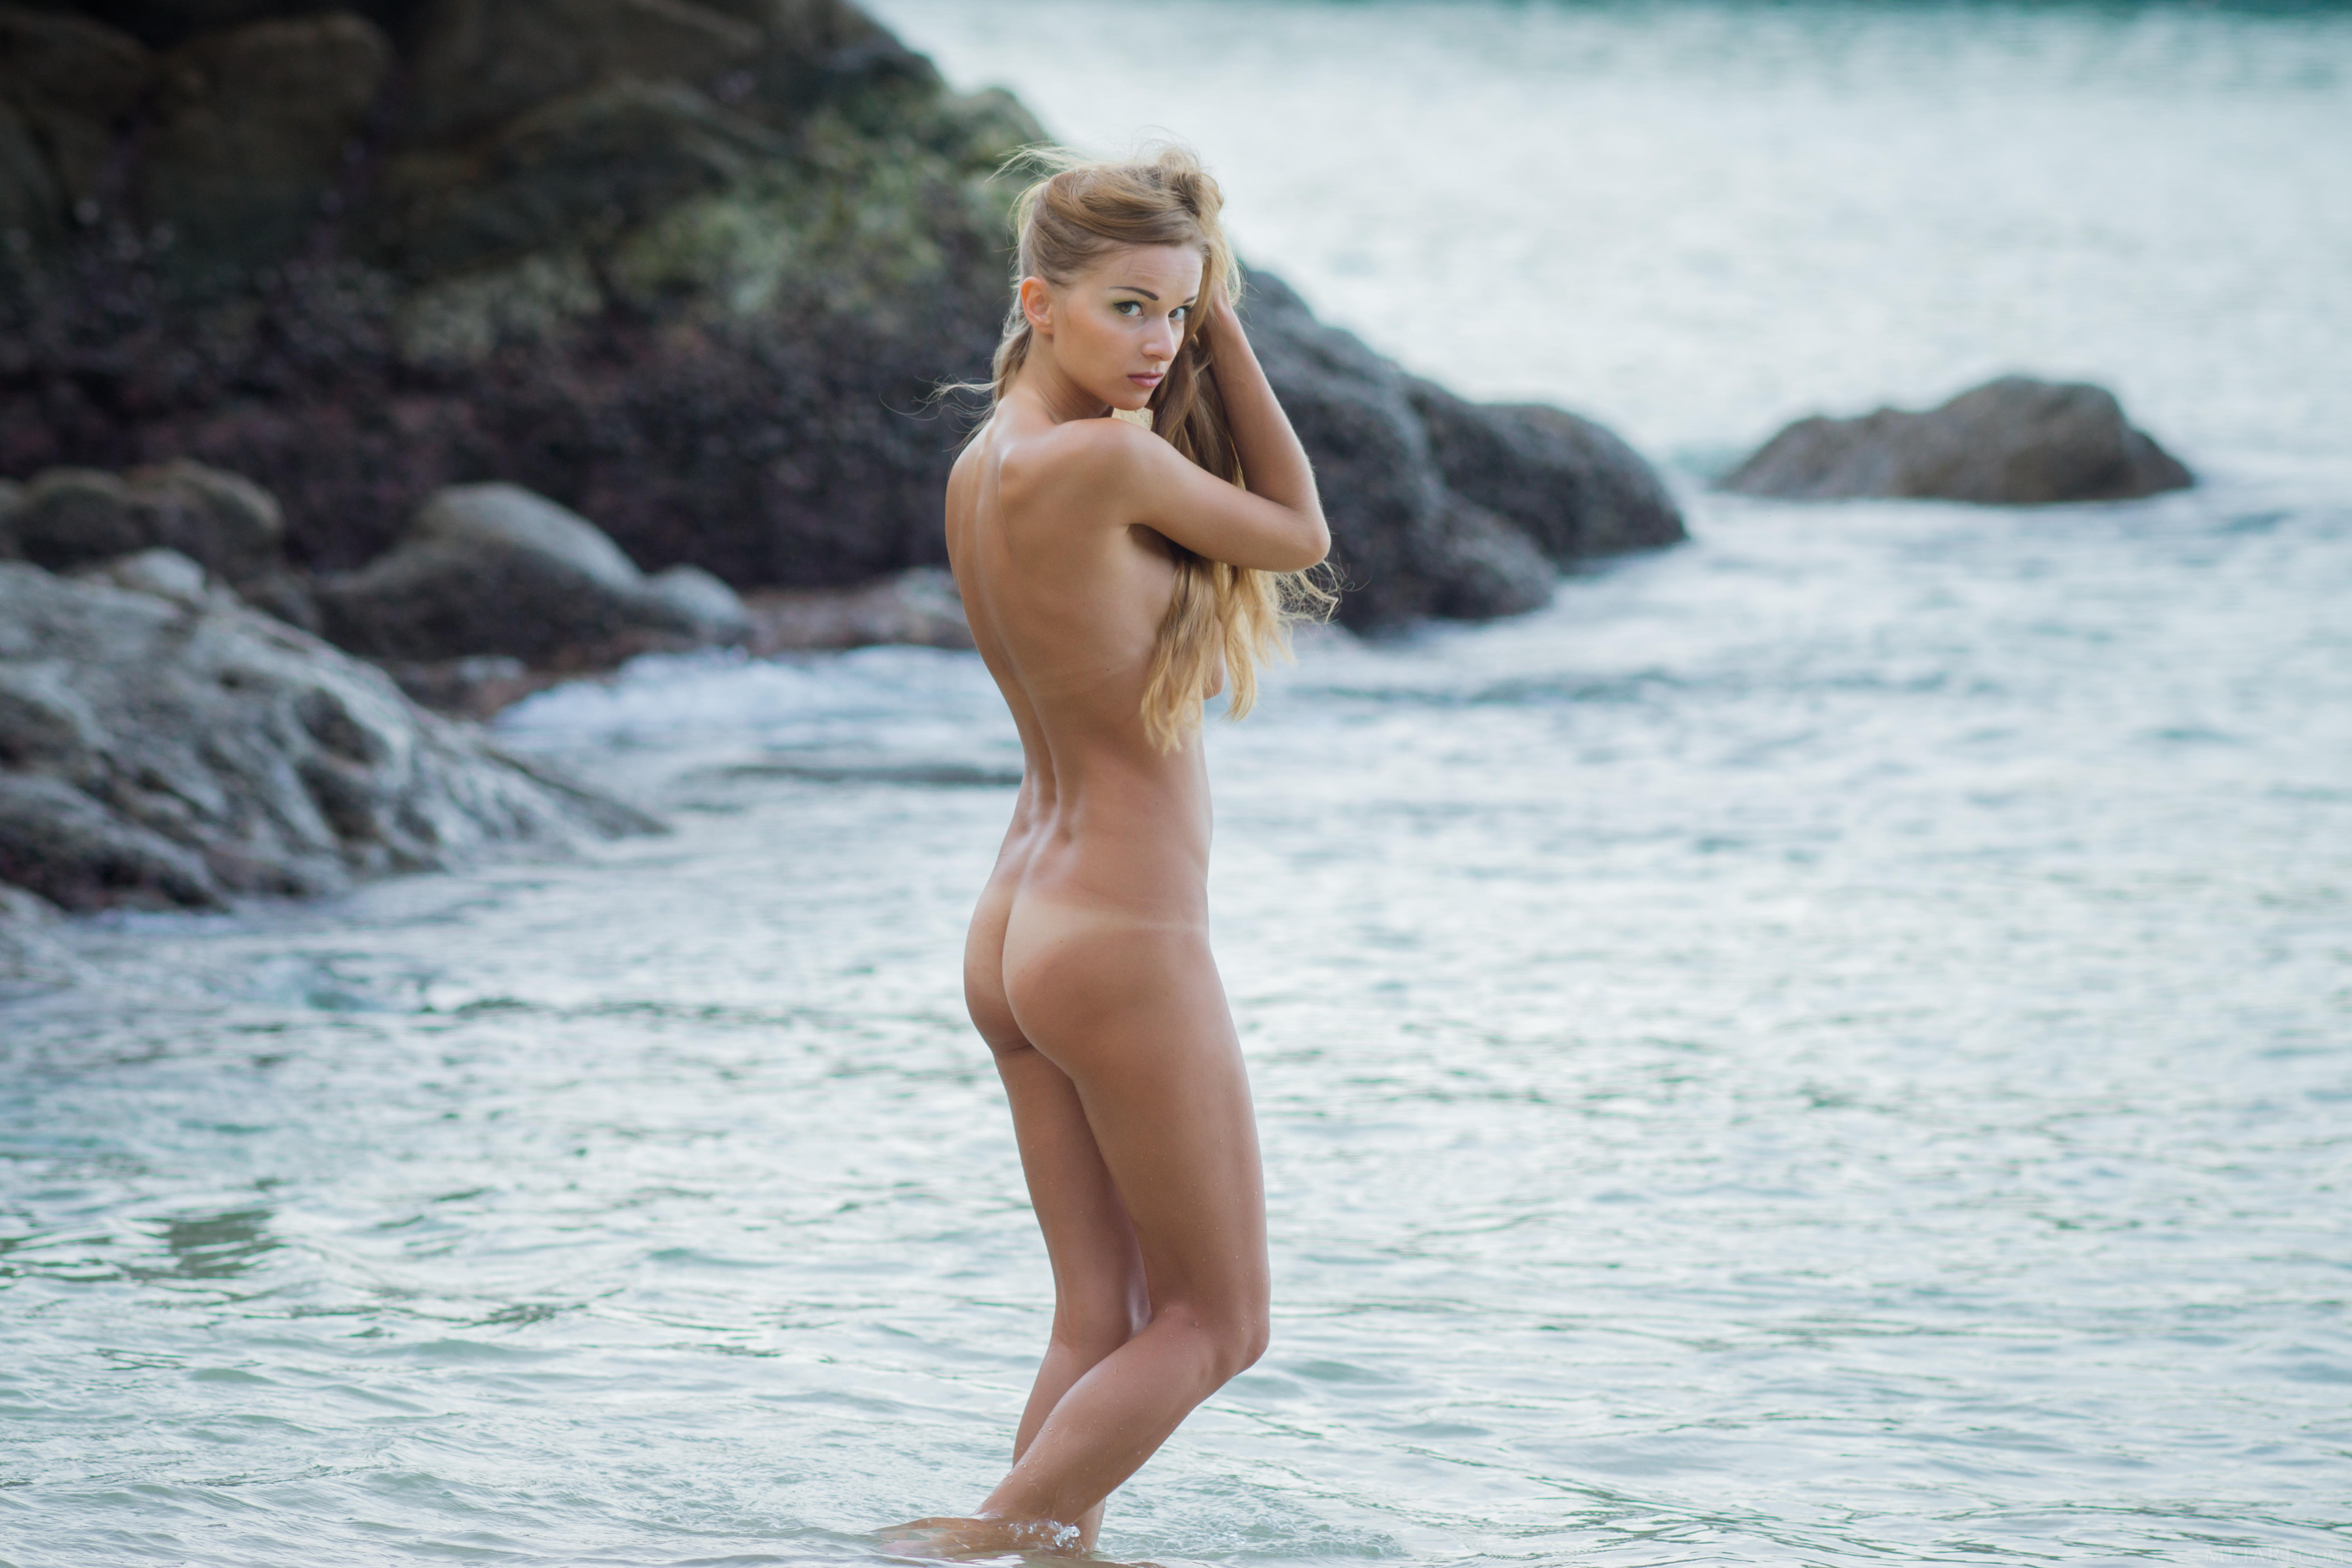 Nude girl on the beach : Naked Girls